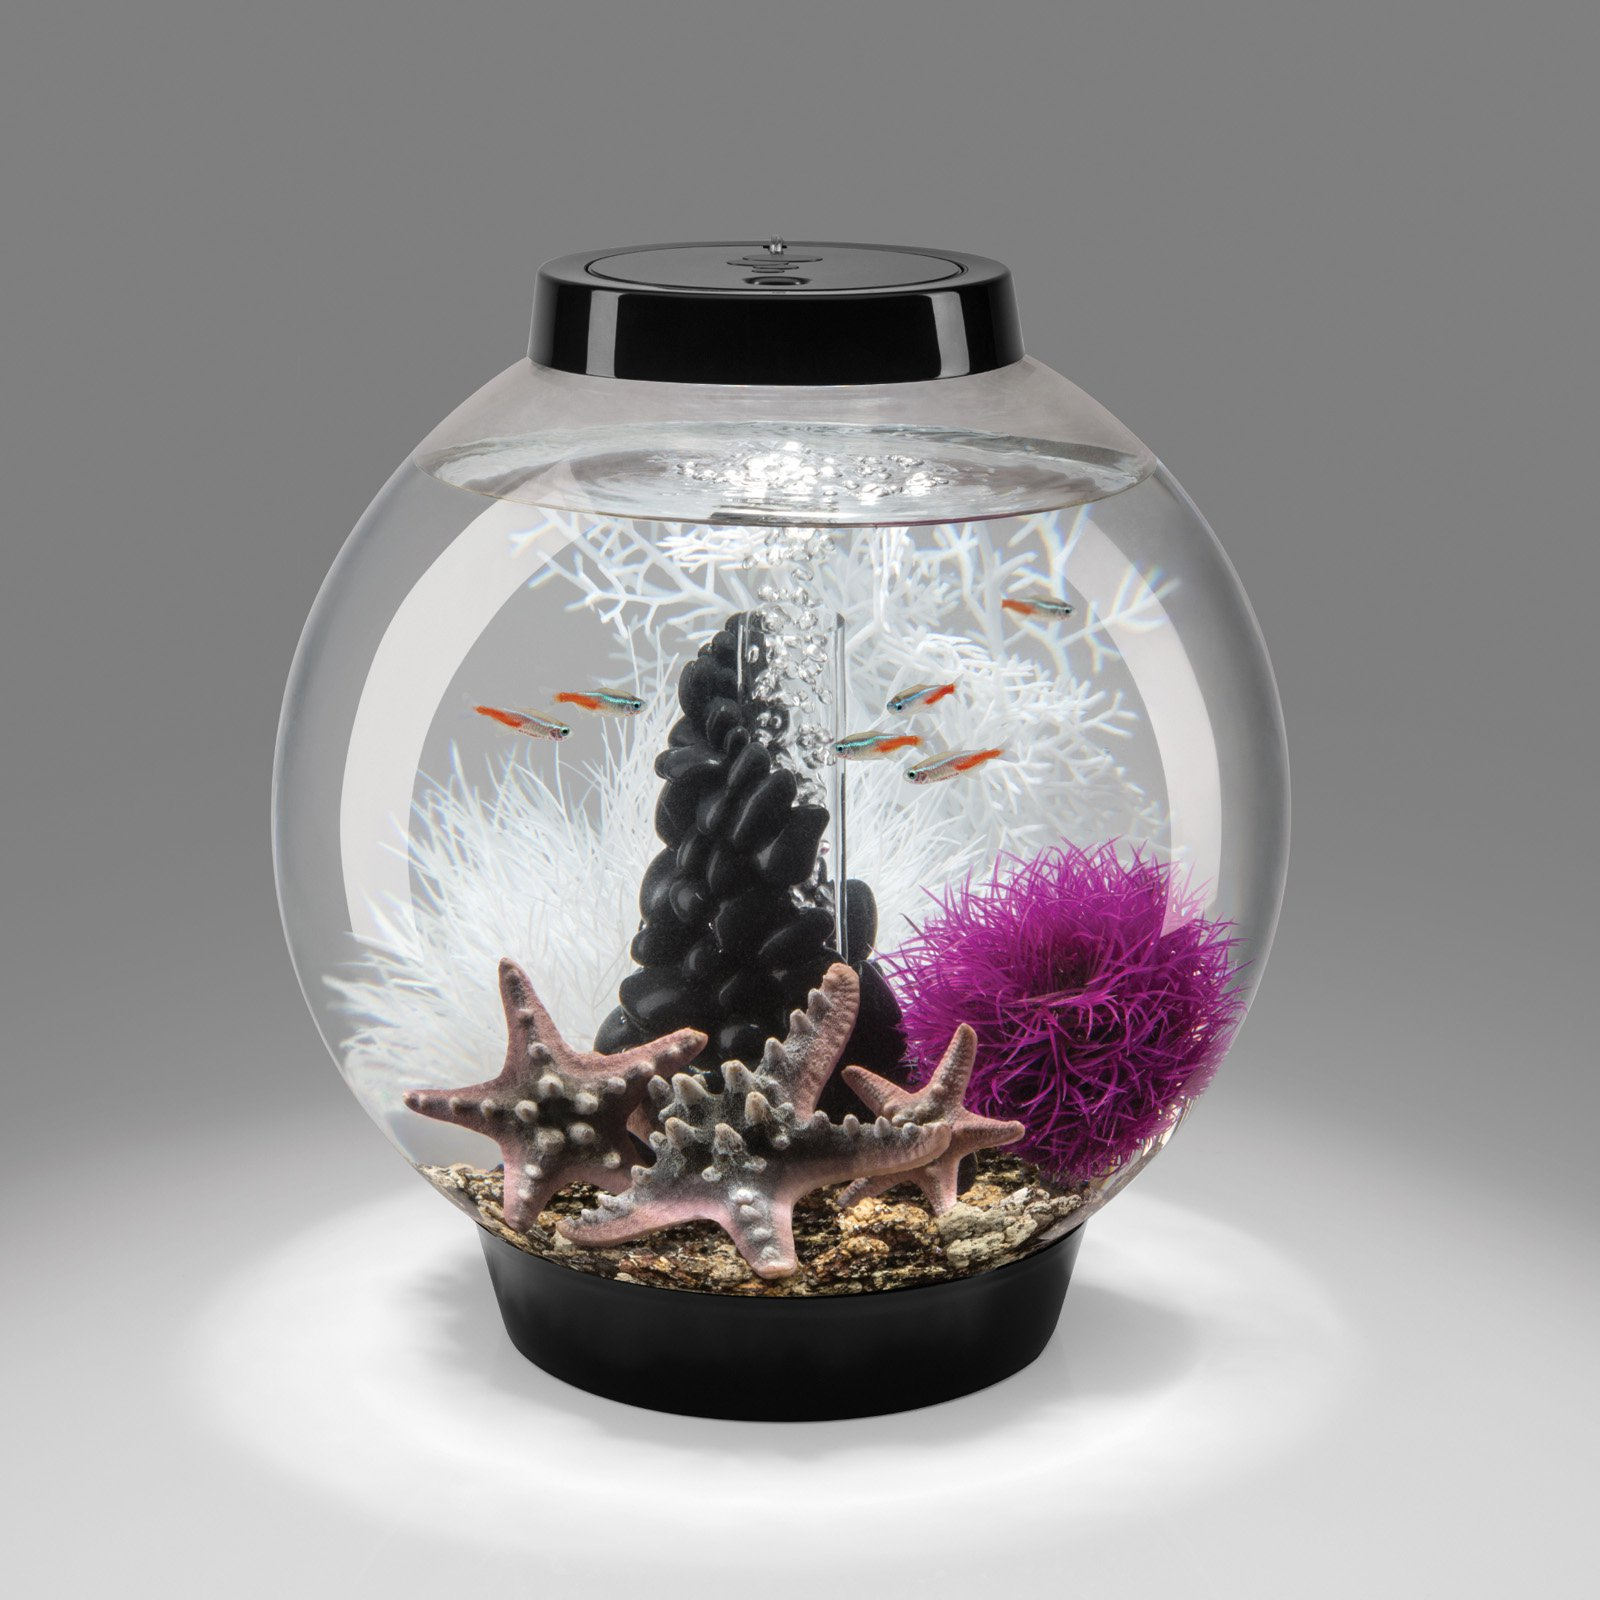 biOrb by Oase Classic 15 Aquarium Set